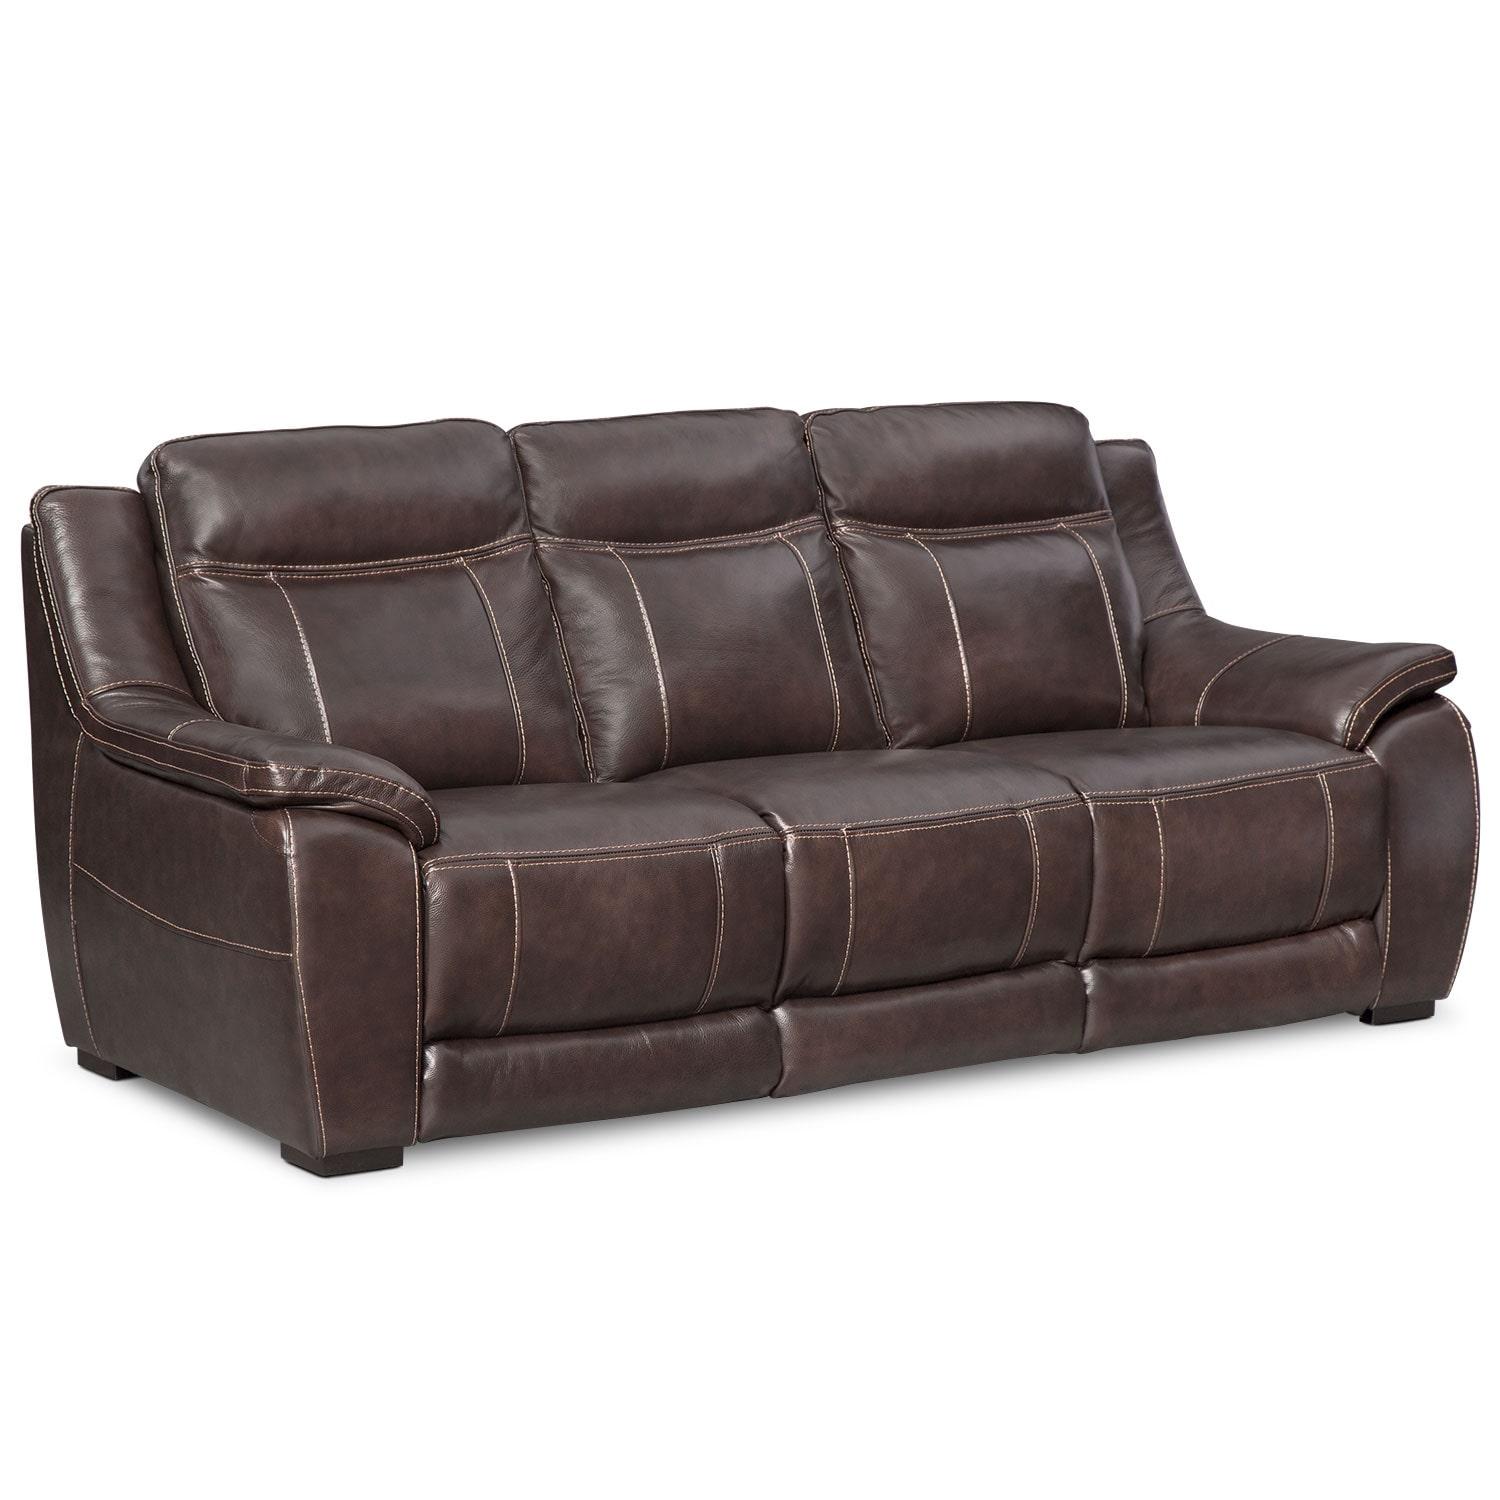 Lido sofa and loveseat set brown american signature for Brown fabric couch